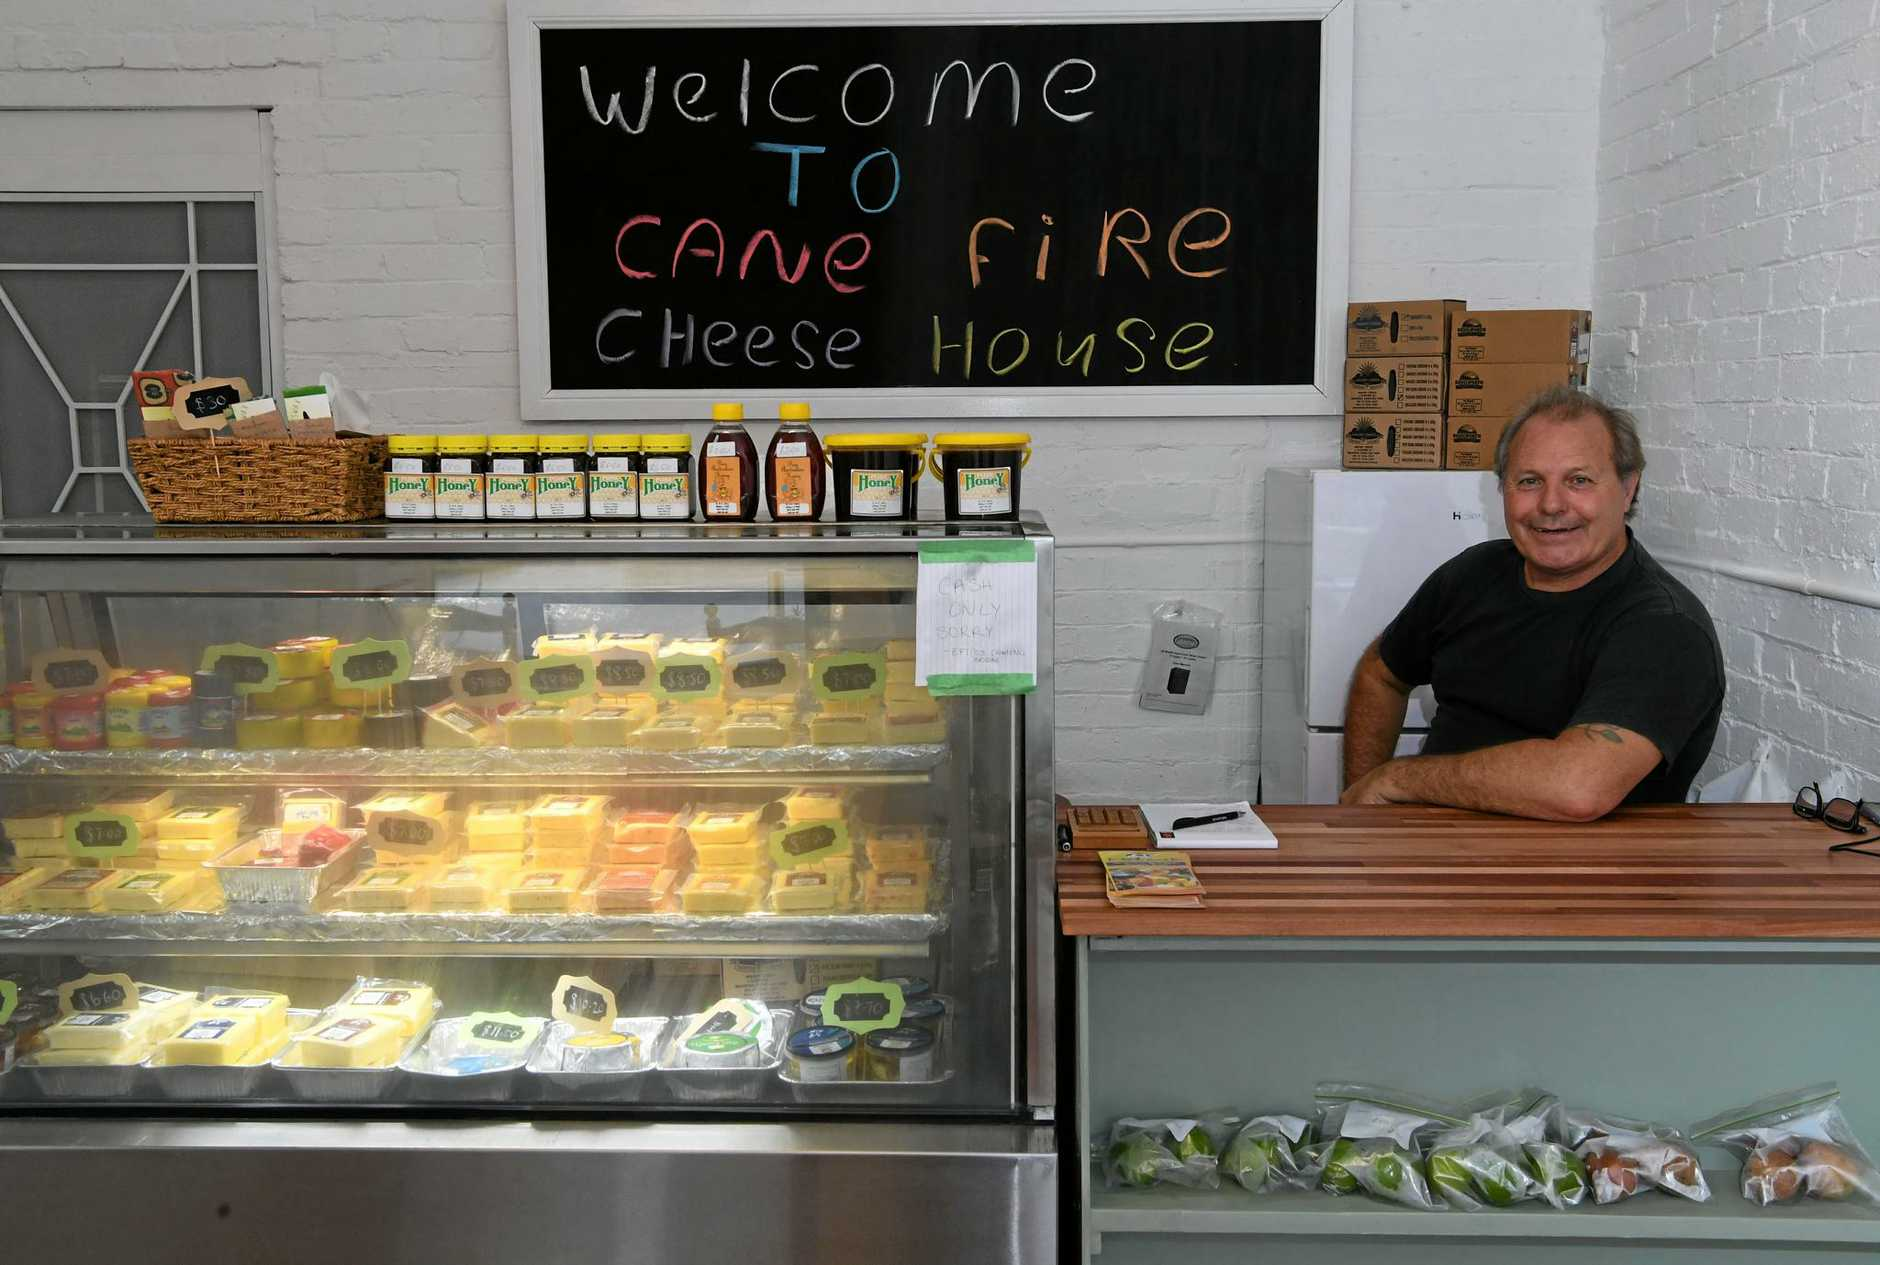 DELI DELIGHTS: Peter Eschbach inside the newly opened Cane Fire Cheese House.